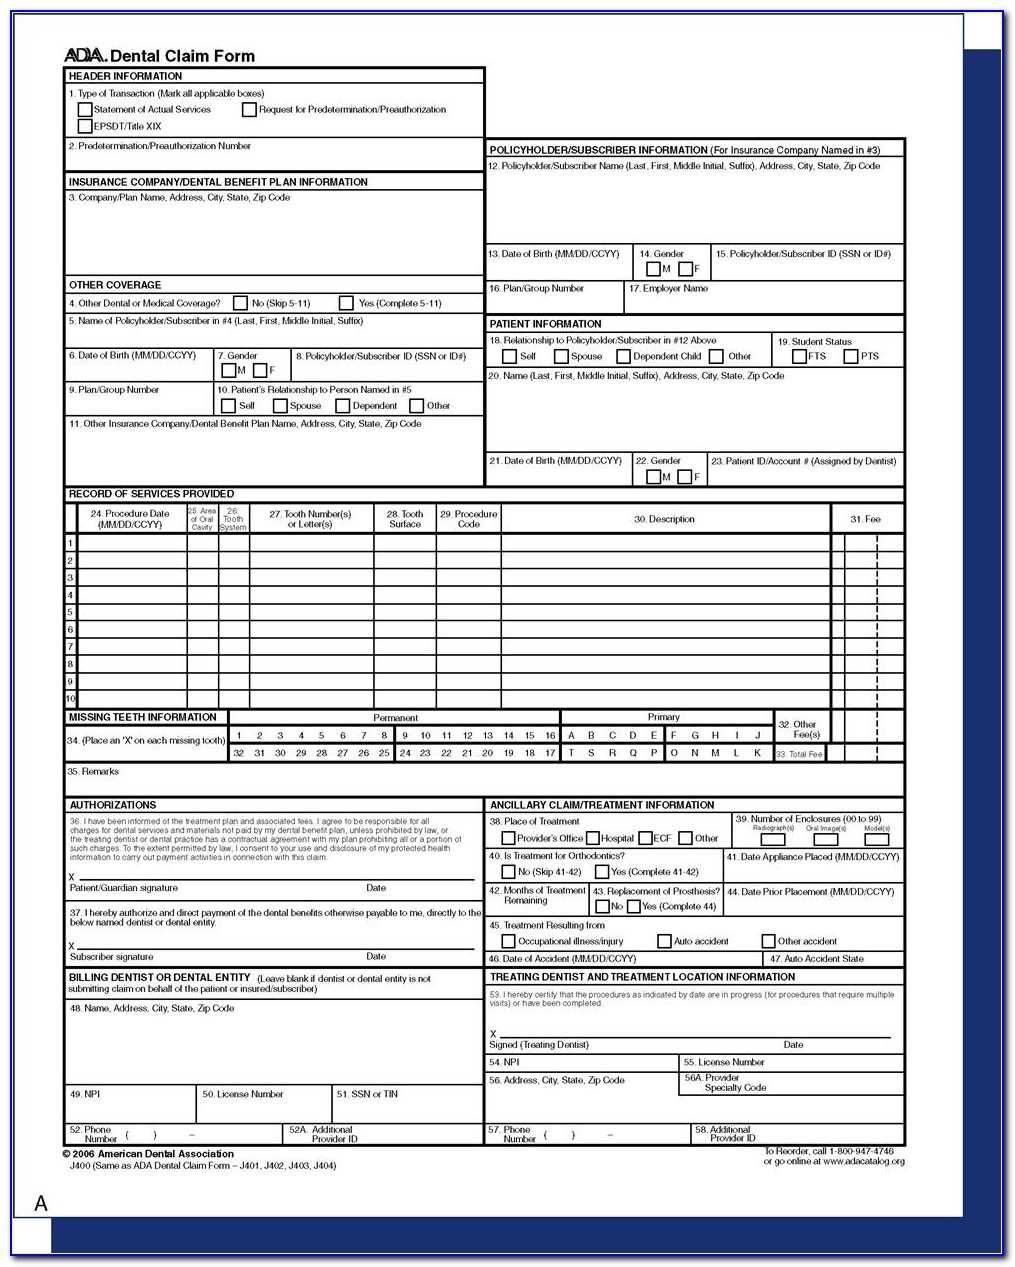 Ada Dental Claim Form Luxury 14 Dental Insurance